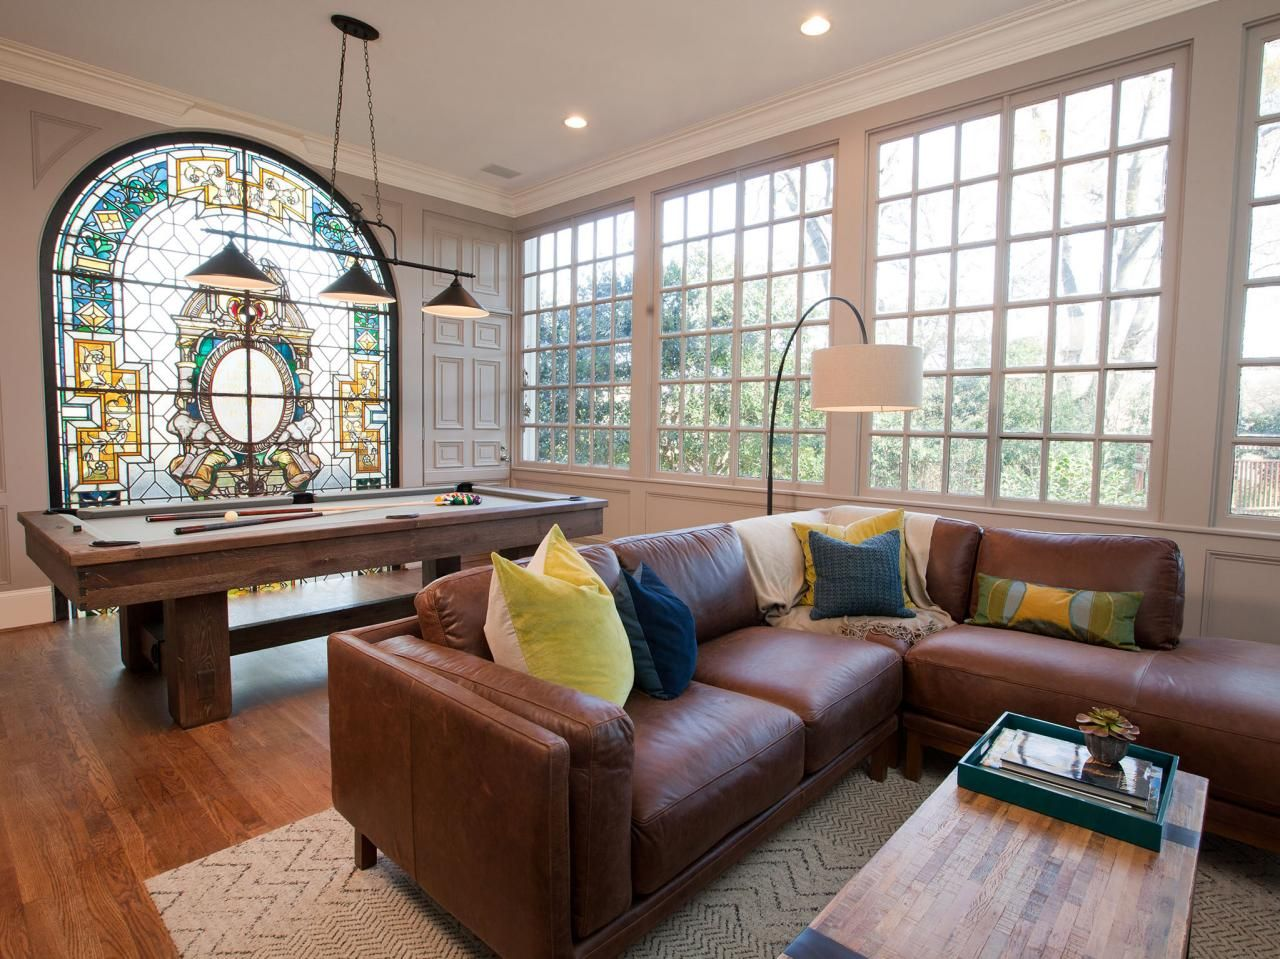 Good Living Room With Arched Stained Glass Window [1280x960] Love Stained Glass  Windows.